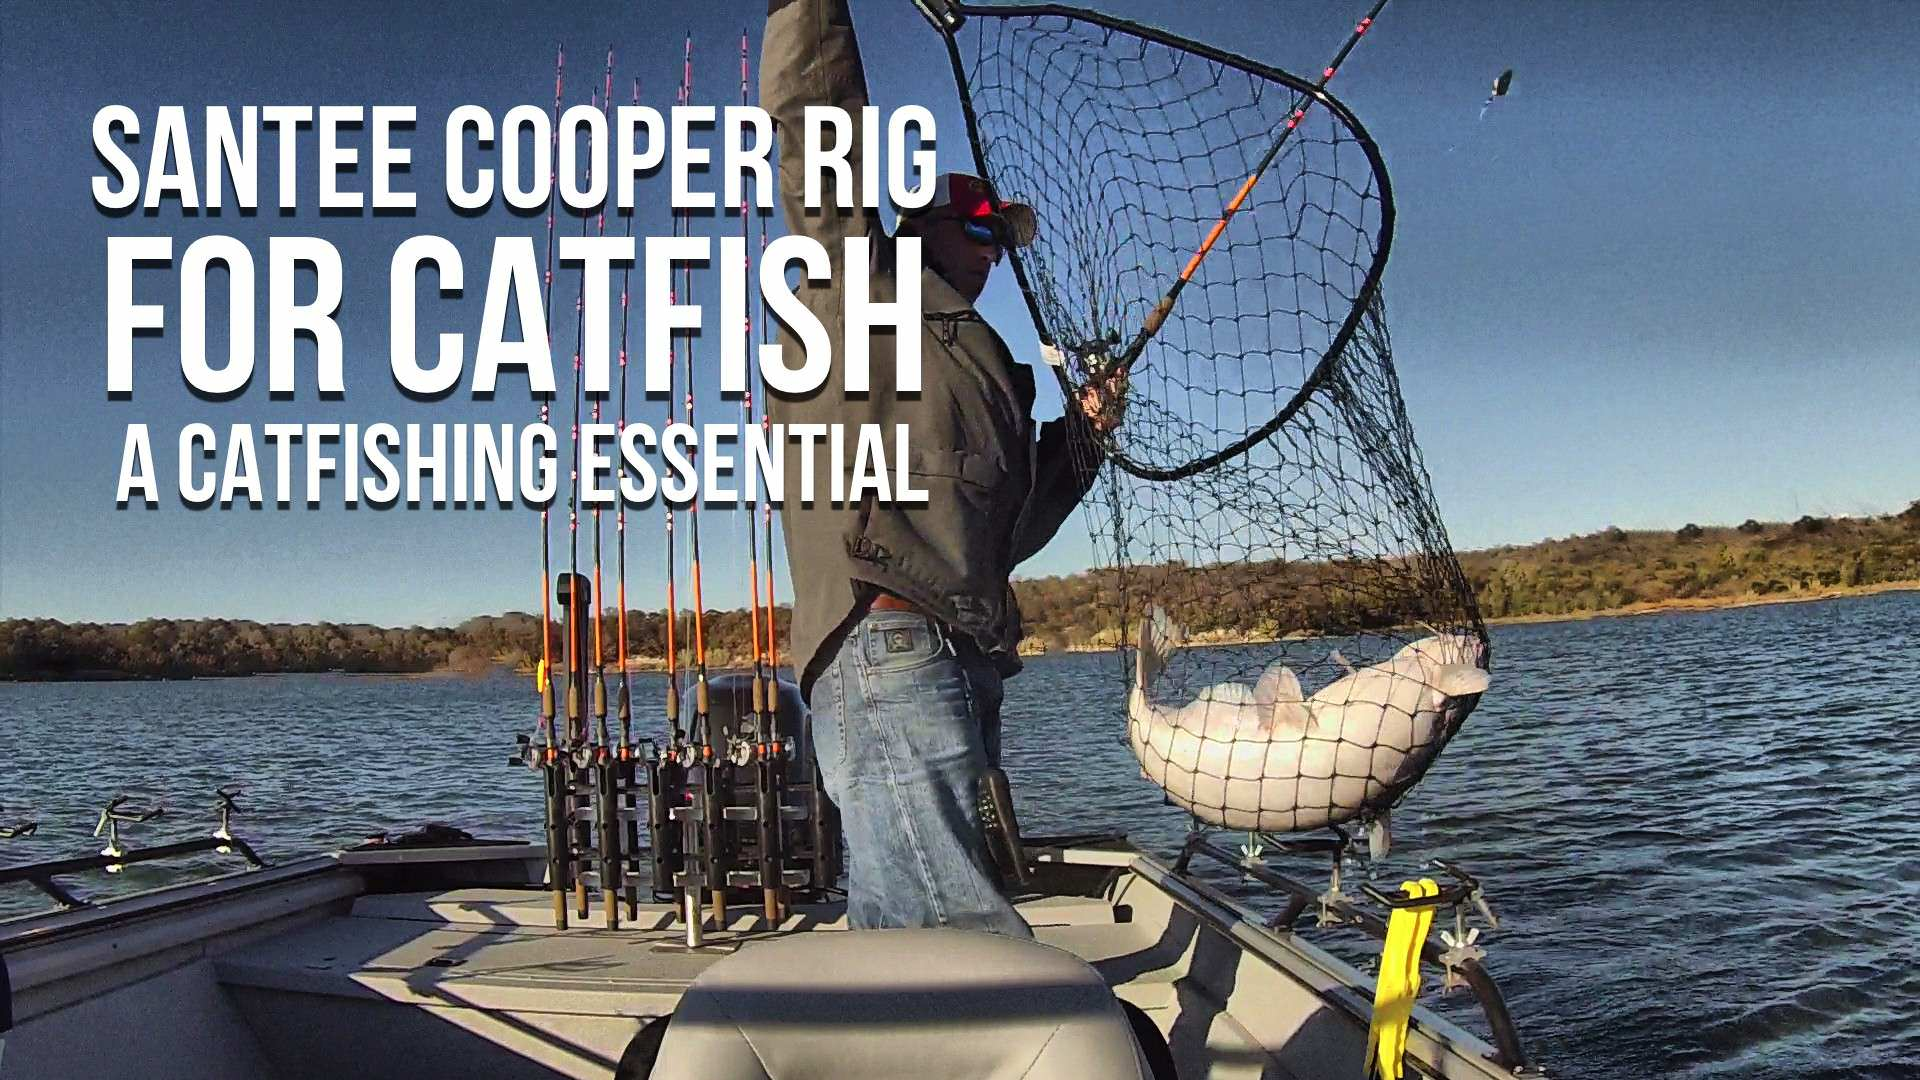 Santee cooper rig for catfish a catfishing essential for Best catfish rig for bank fishing